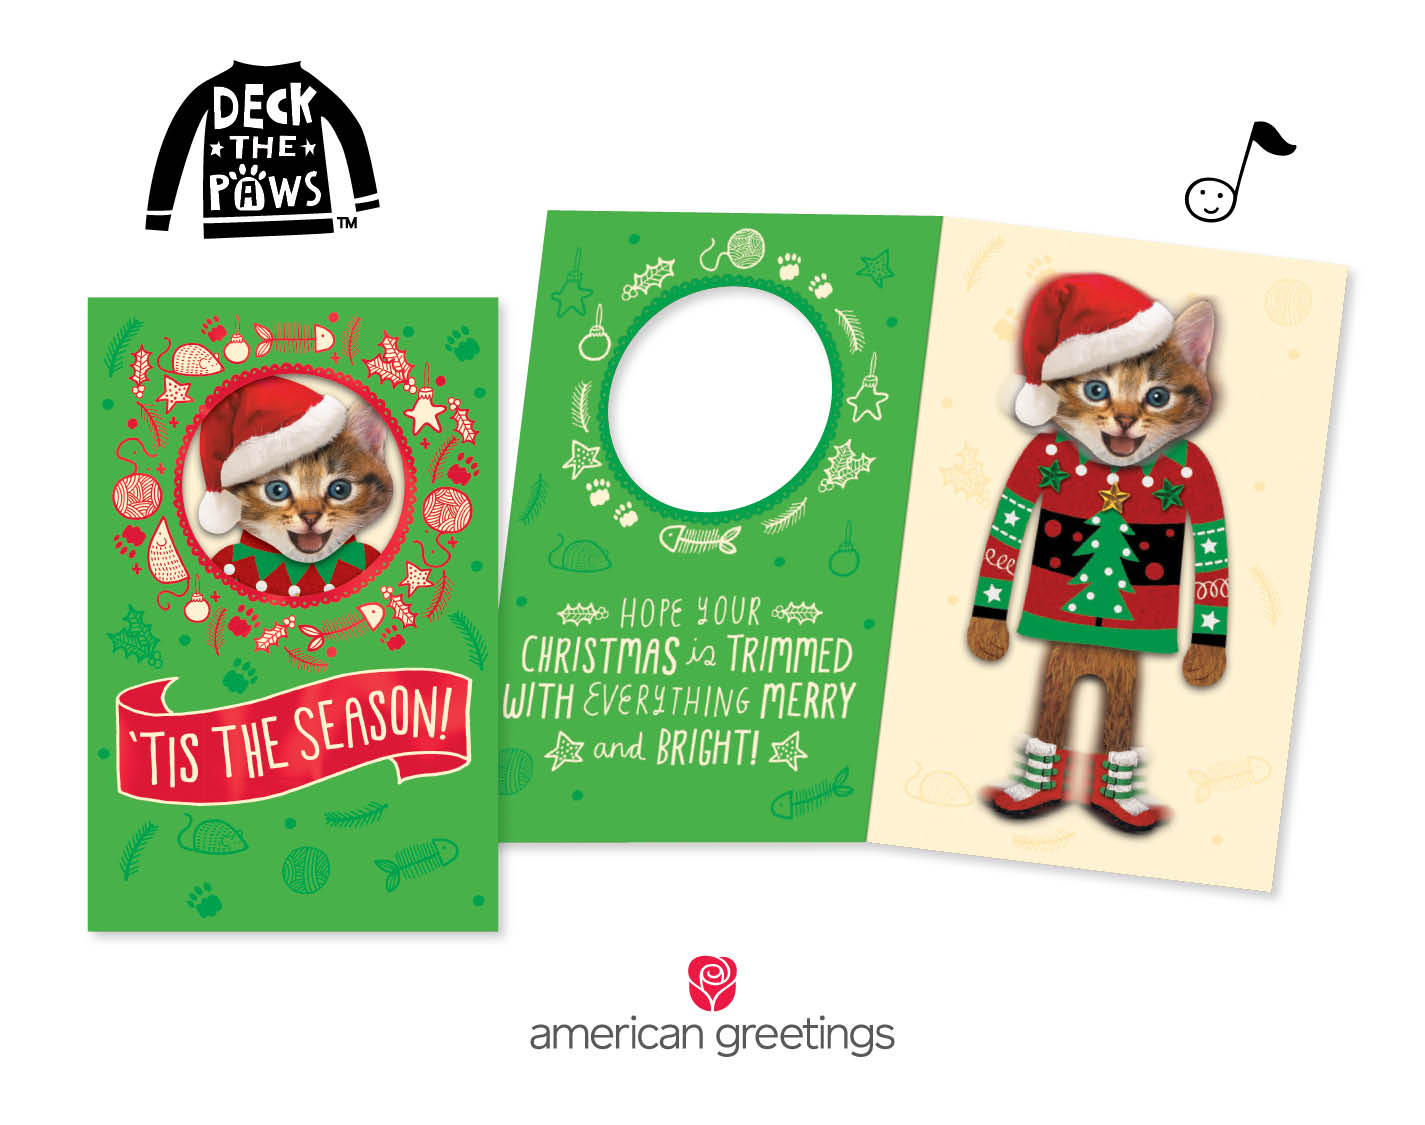 Make Christmas Extra Fun With New Deck The Pawstm Cards From